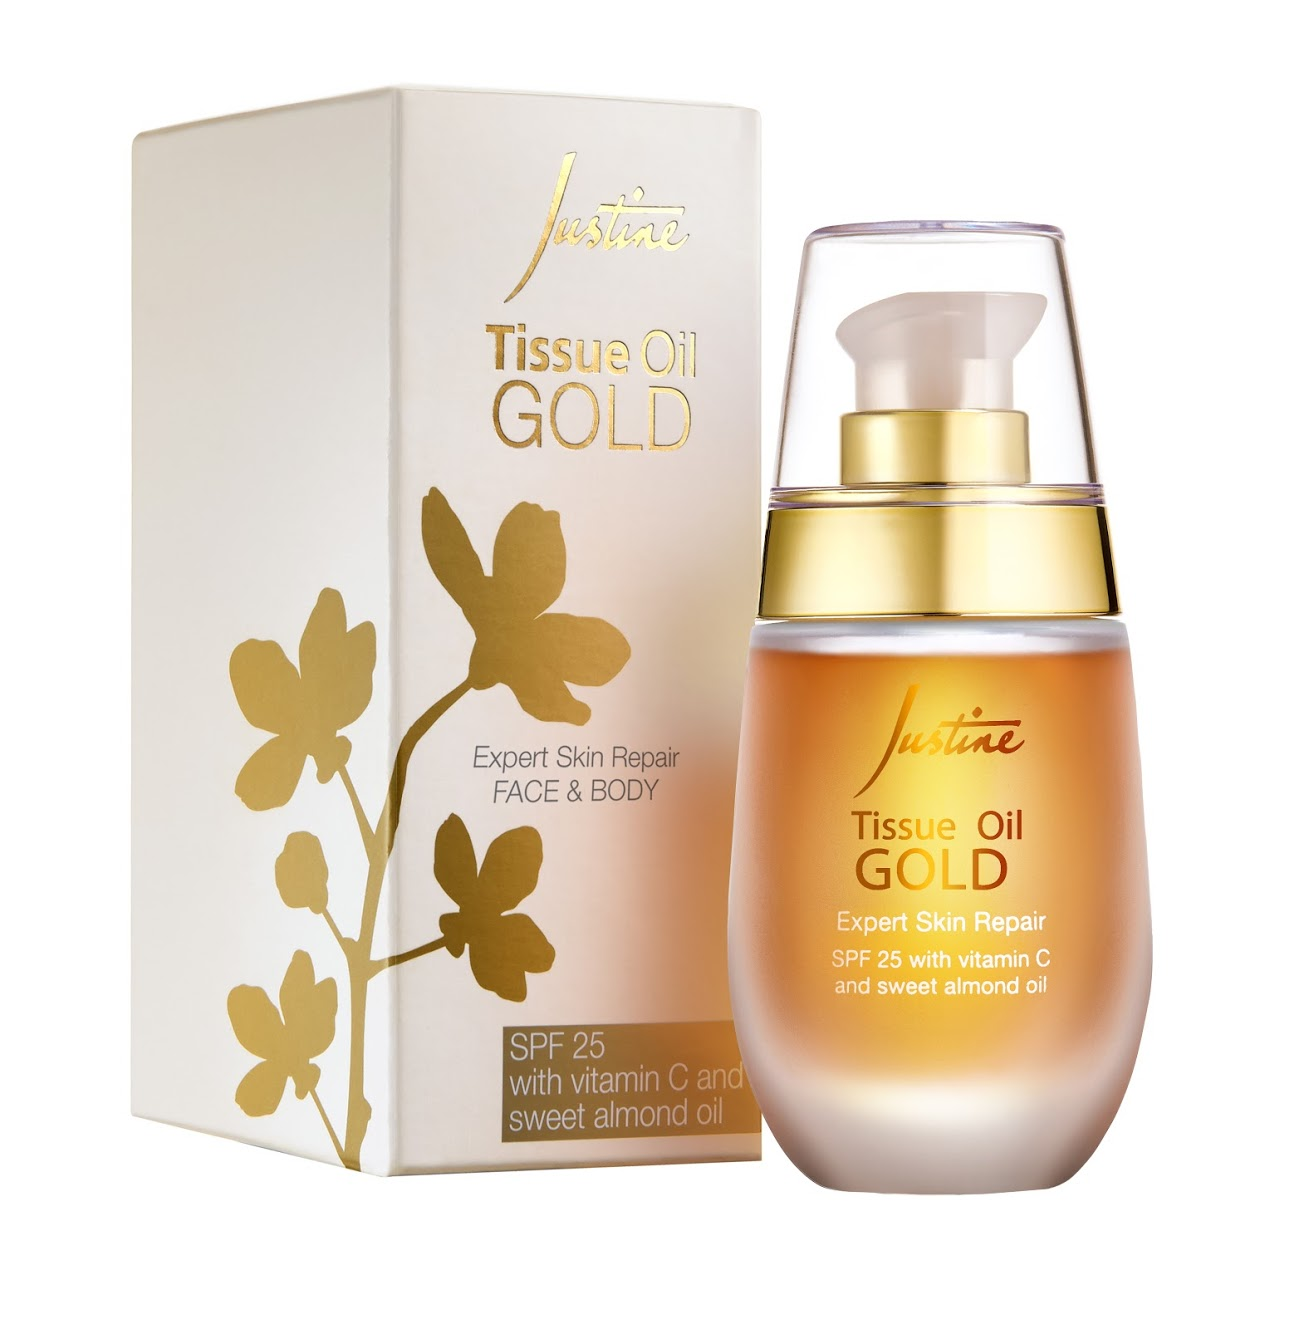 Avon Justine face and body oil